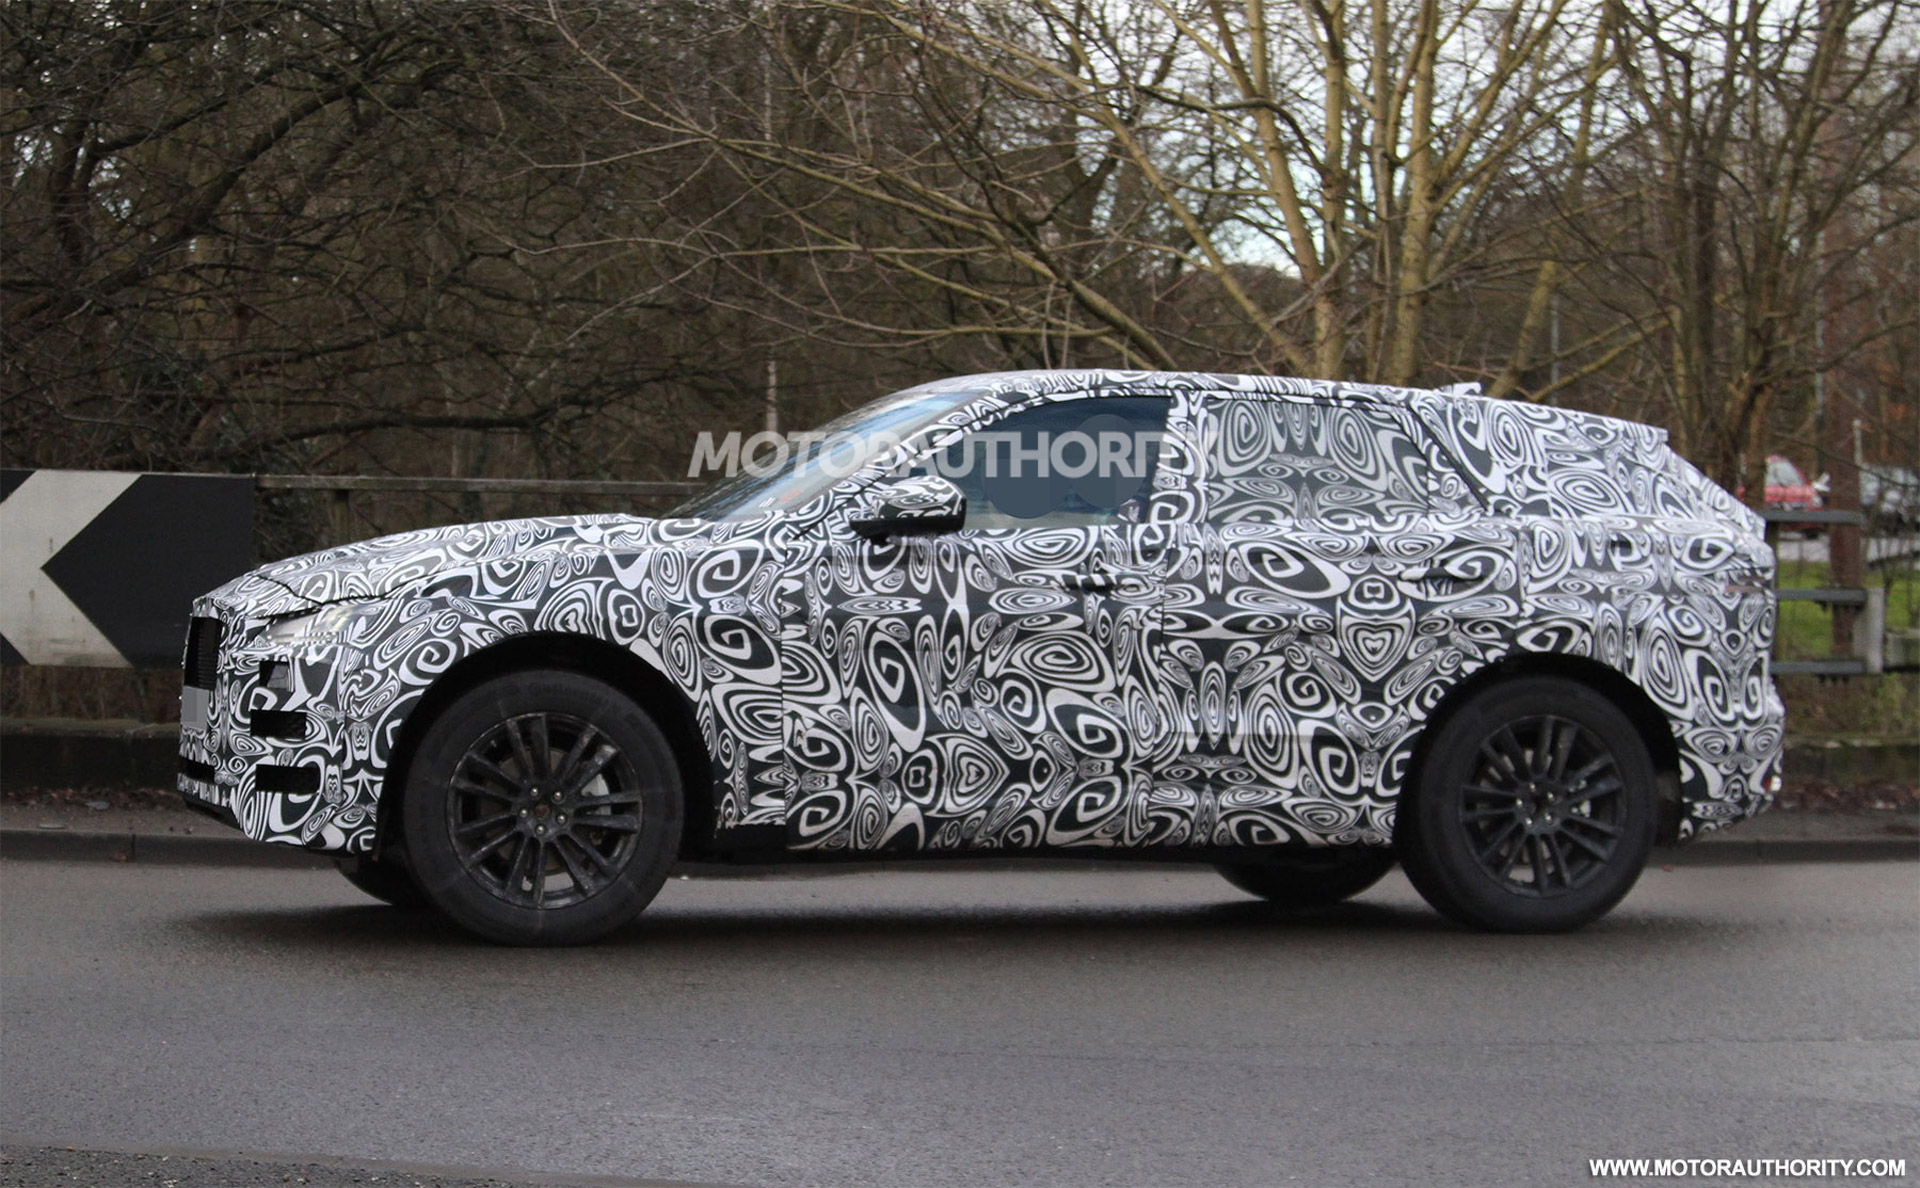 Jaguar F-Pace Spied, Lamborghini Aventador SV Leaked, 'Furious 7' Teased: Today's Car News